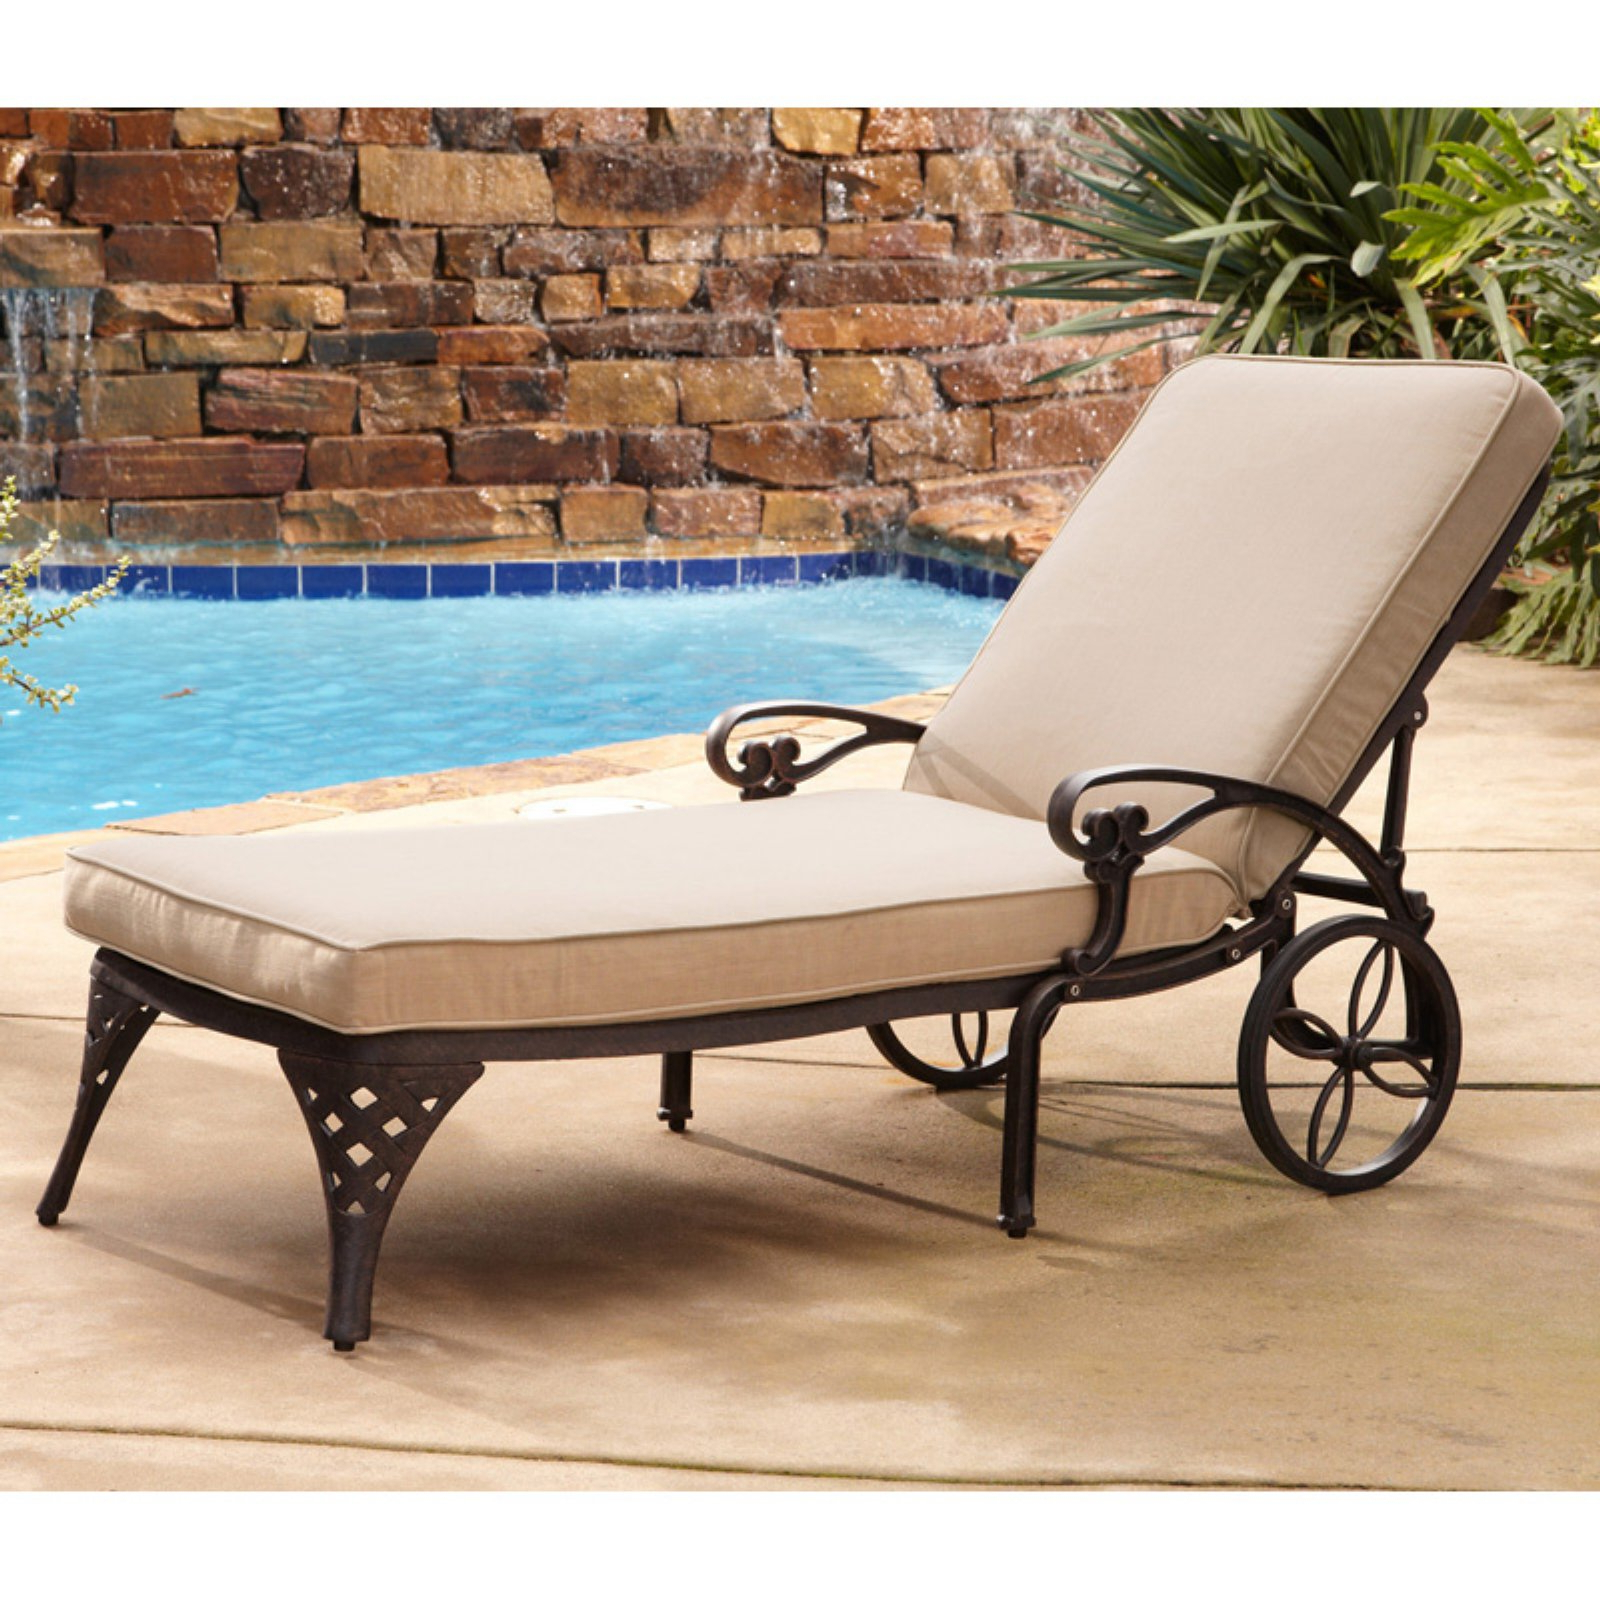 Preferred Lattice Outdoor Patio Pool Chaise Lounges With Wheels And Cushion In Outdoor Home Styles Biscayne Chaise Lounge Chair Without (View 10 of 25)